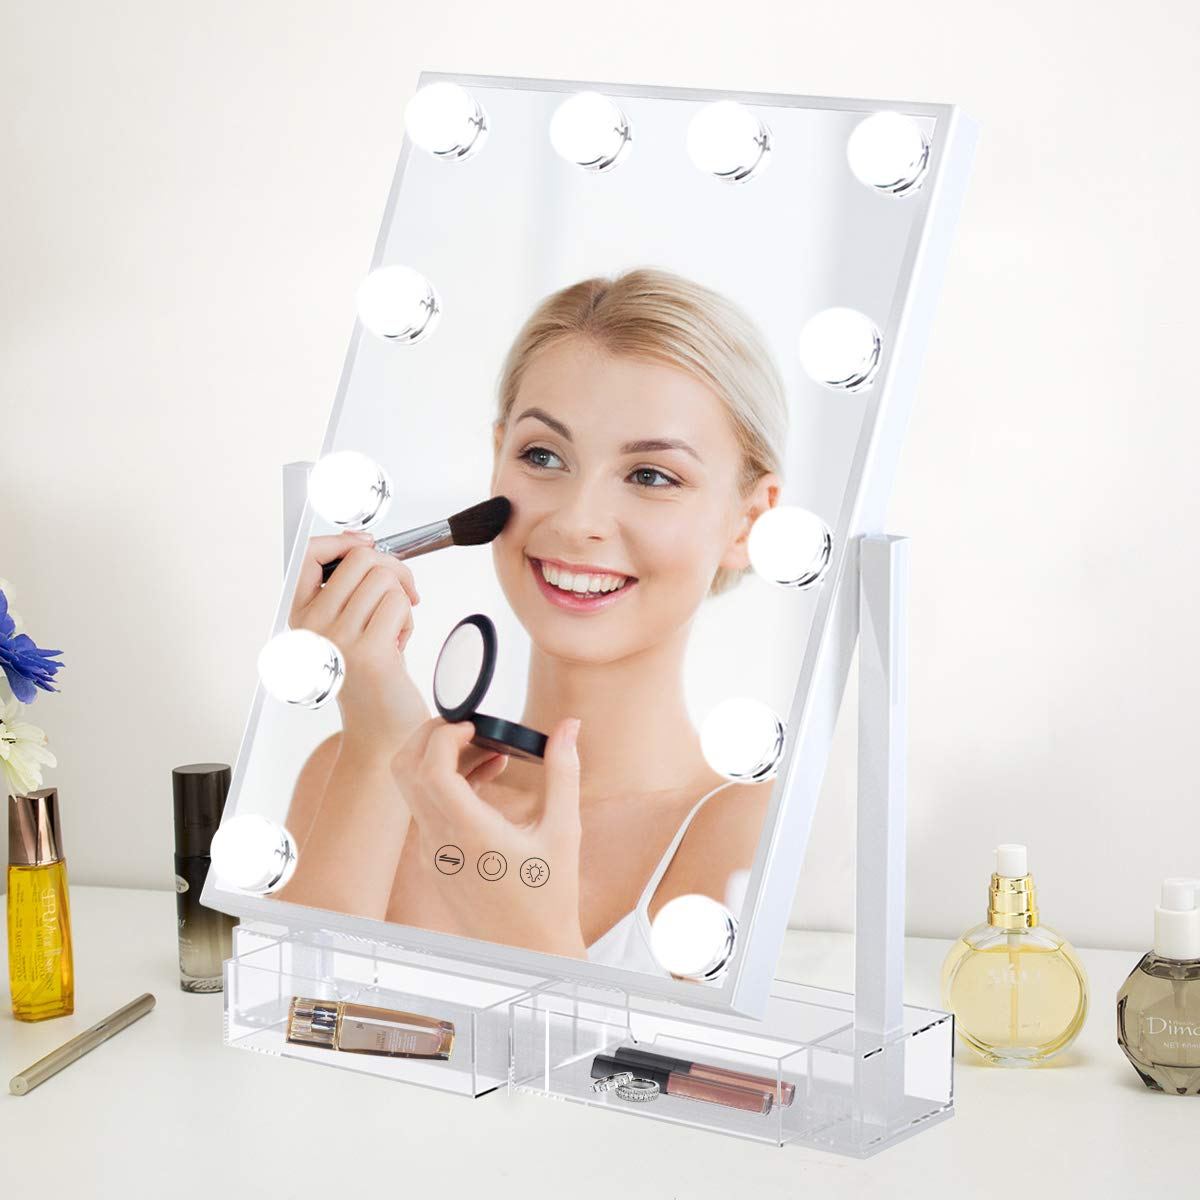 Vanity Mirror with Lights Lighted Makeup Mirror with Acrylic Comestic Organizer Dimmable LED Three Colors Light Bulbs Touch Control Design Free Roration Detachable 10X Magnification